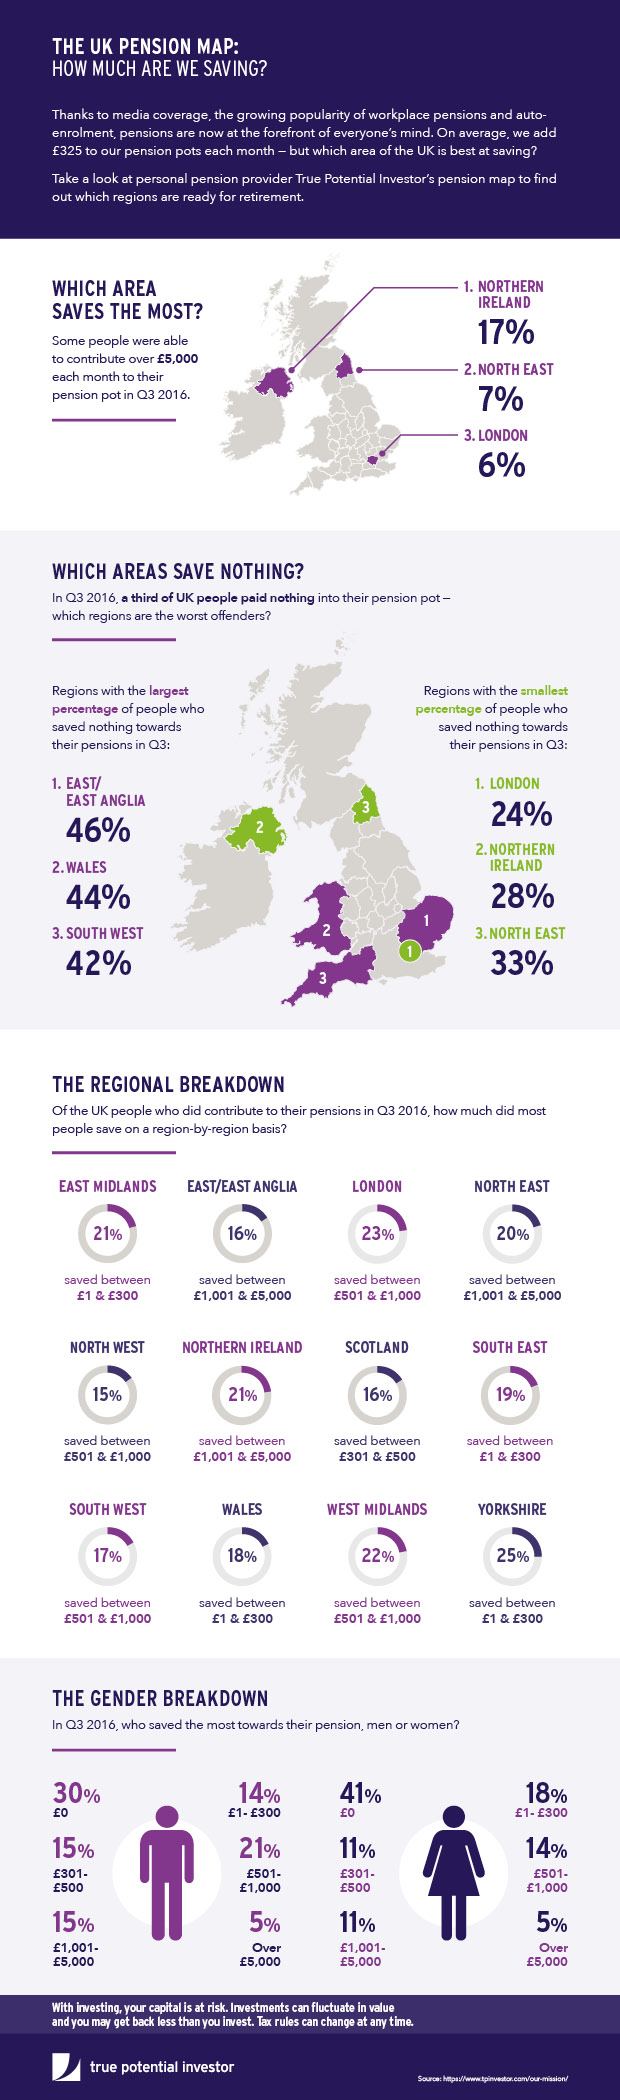 Fintech Company Infographic: UK Pensions Map